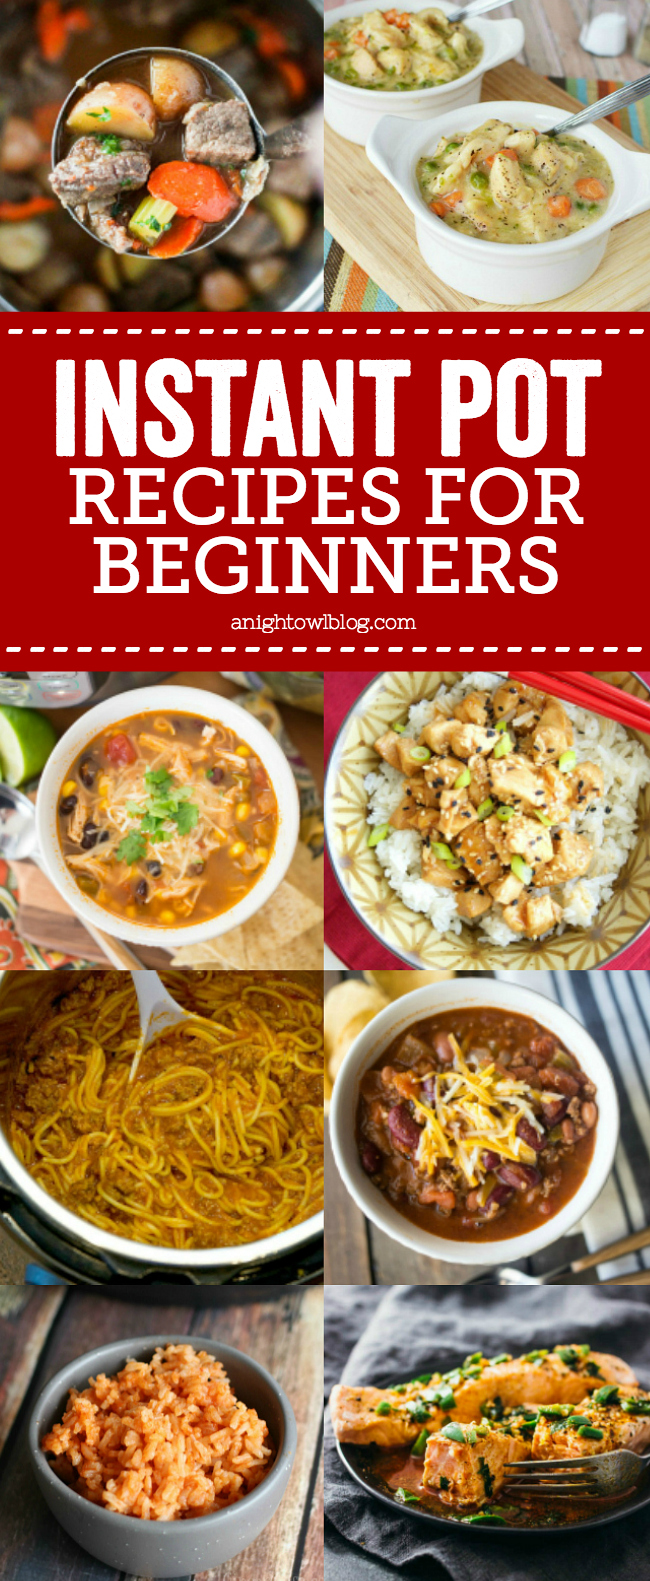 If you recently got an Instant Pot or are just looking for some new recipes to try, you don't want to miss these easy Instant Pot Recipes for Beginners!